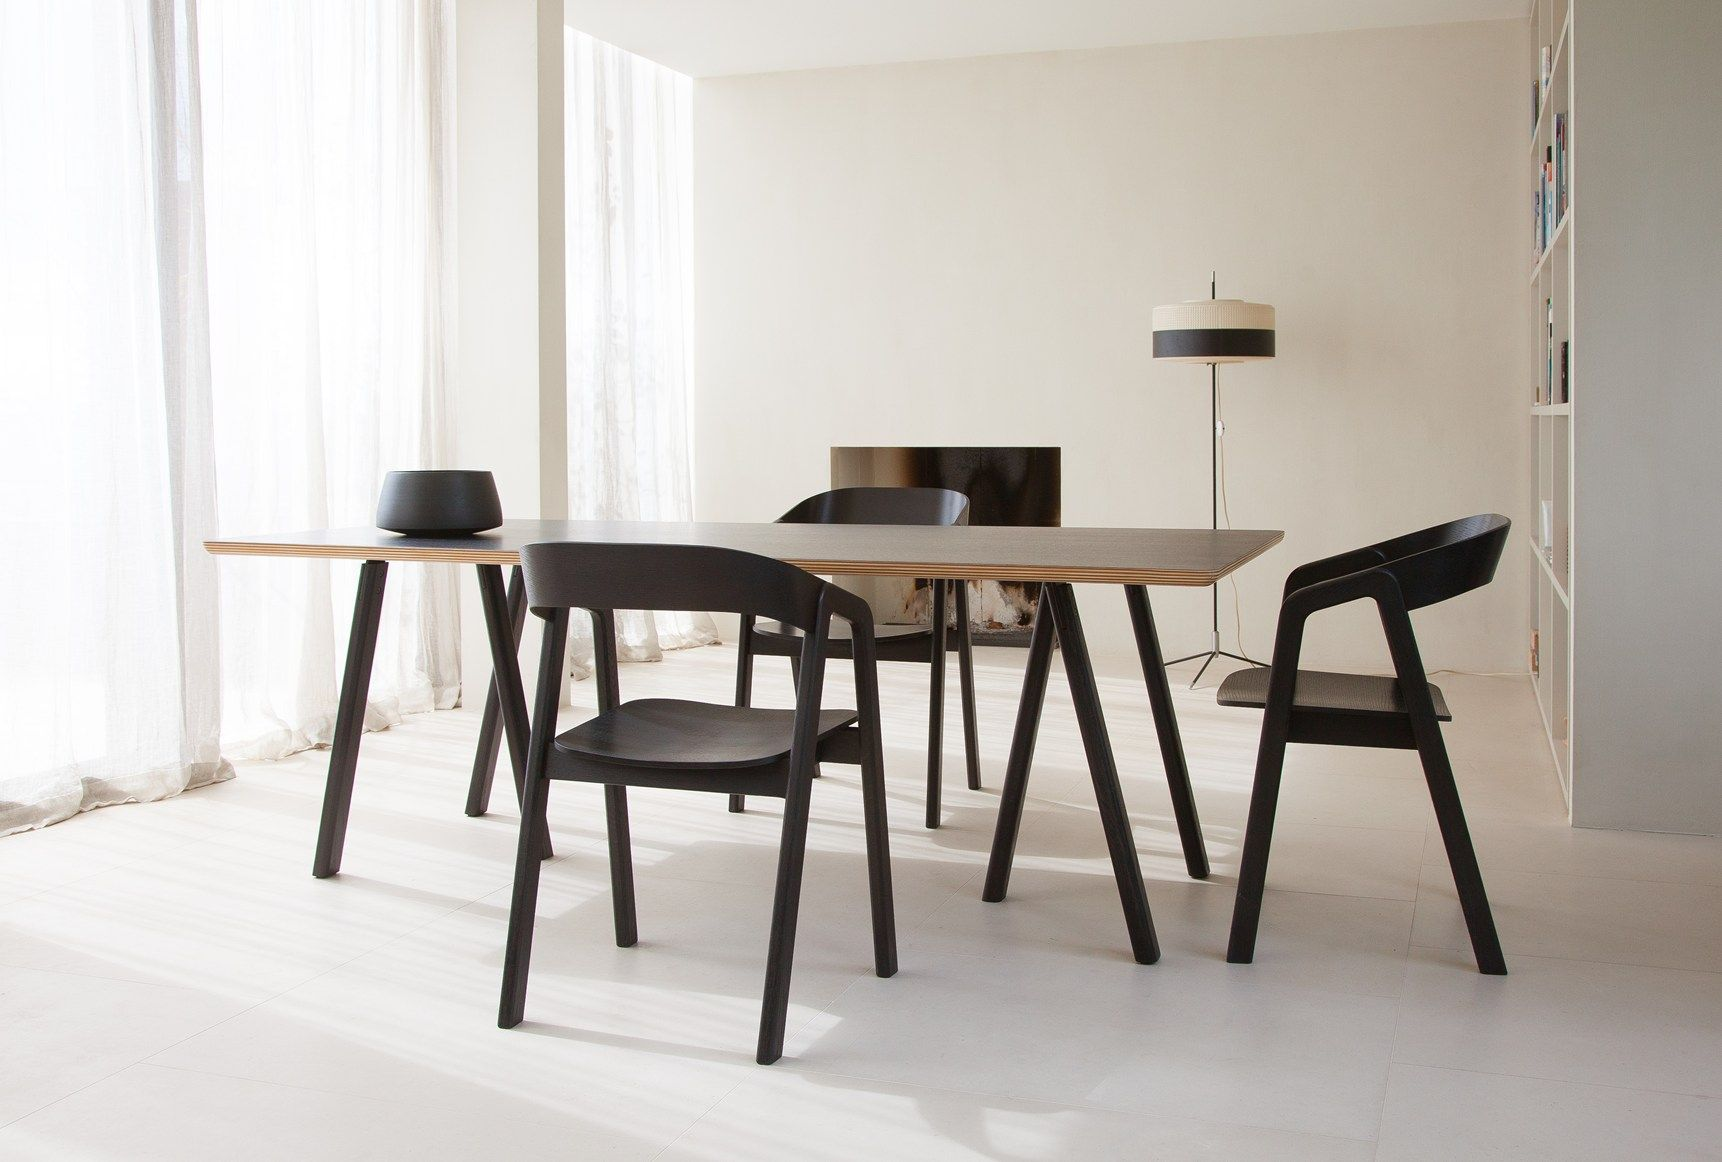 Biennale Interieur | News | Archiproducts